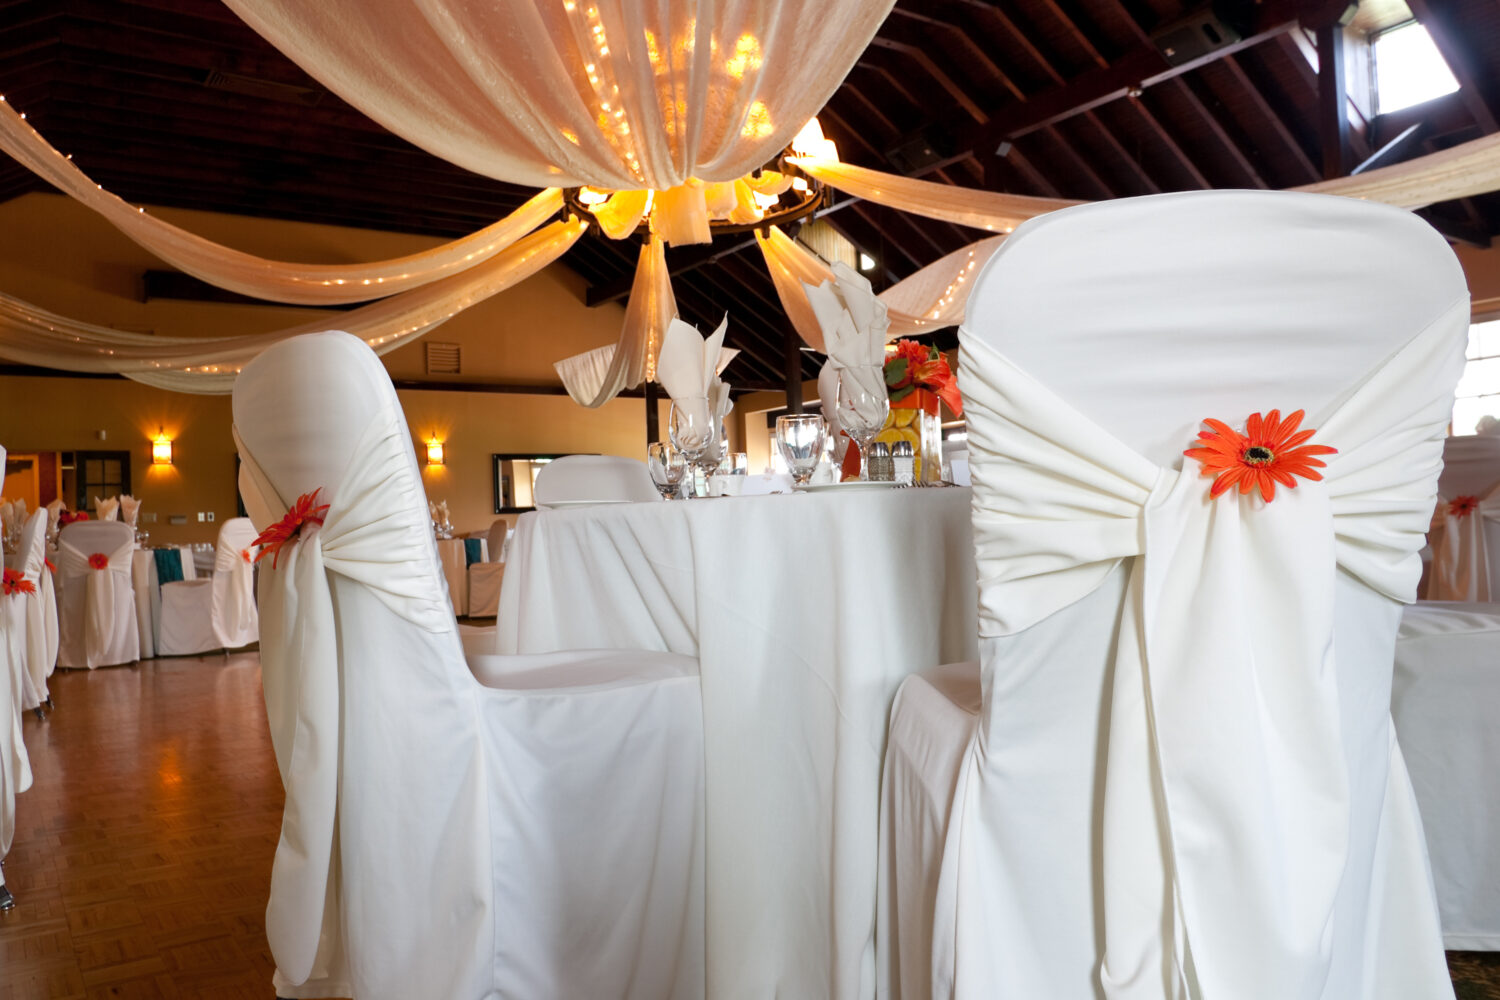 wideangle of a wedding venue focus on a single table with white covered chairs